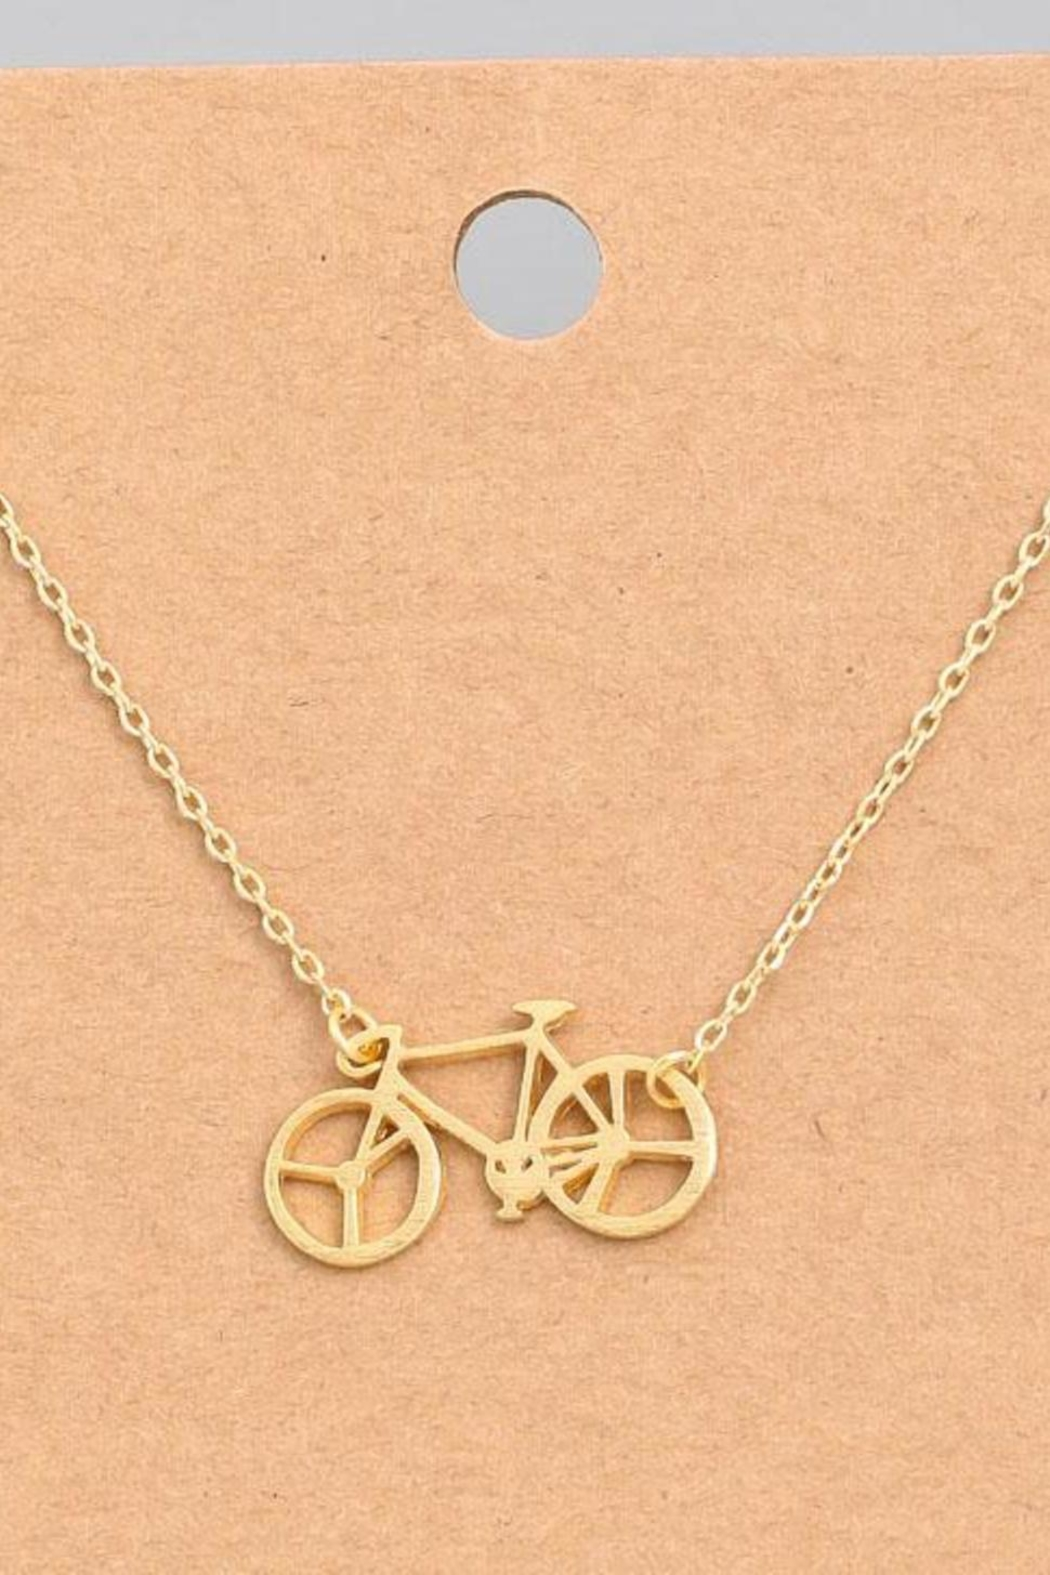 ShopGoldies Bicycle Dainty Necklace - Main Image